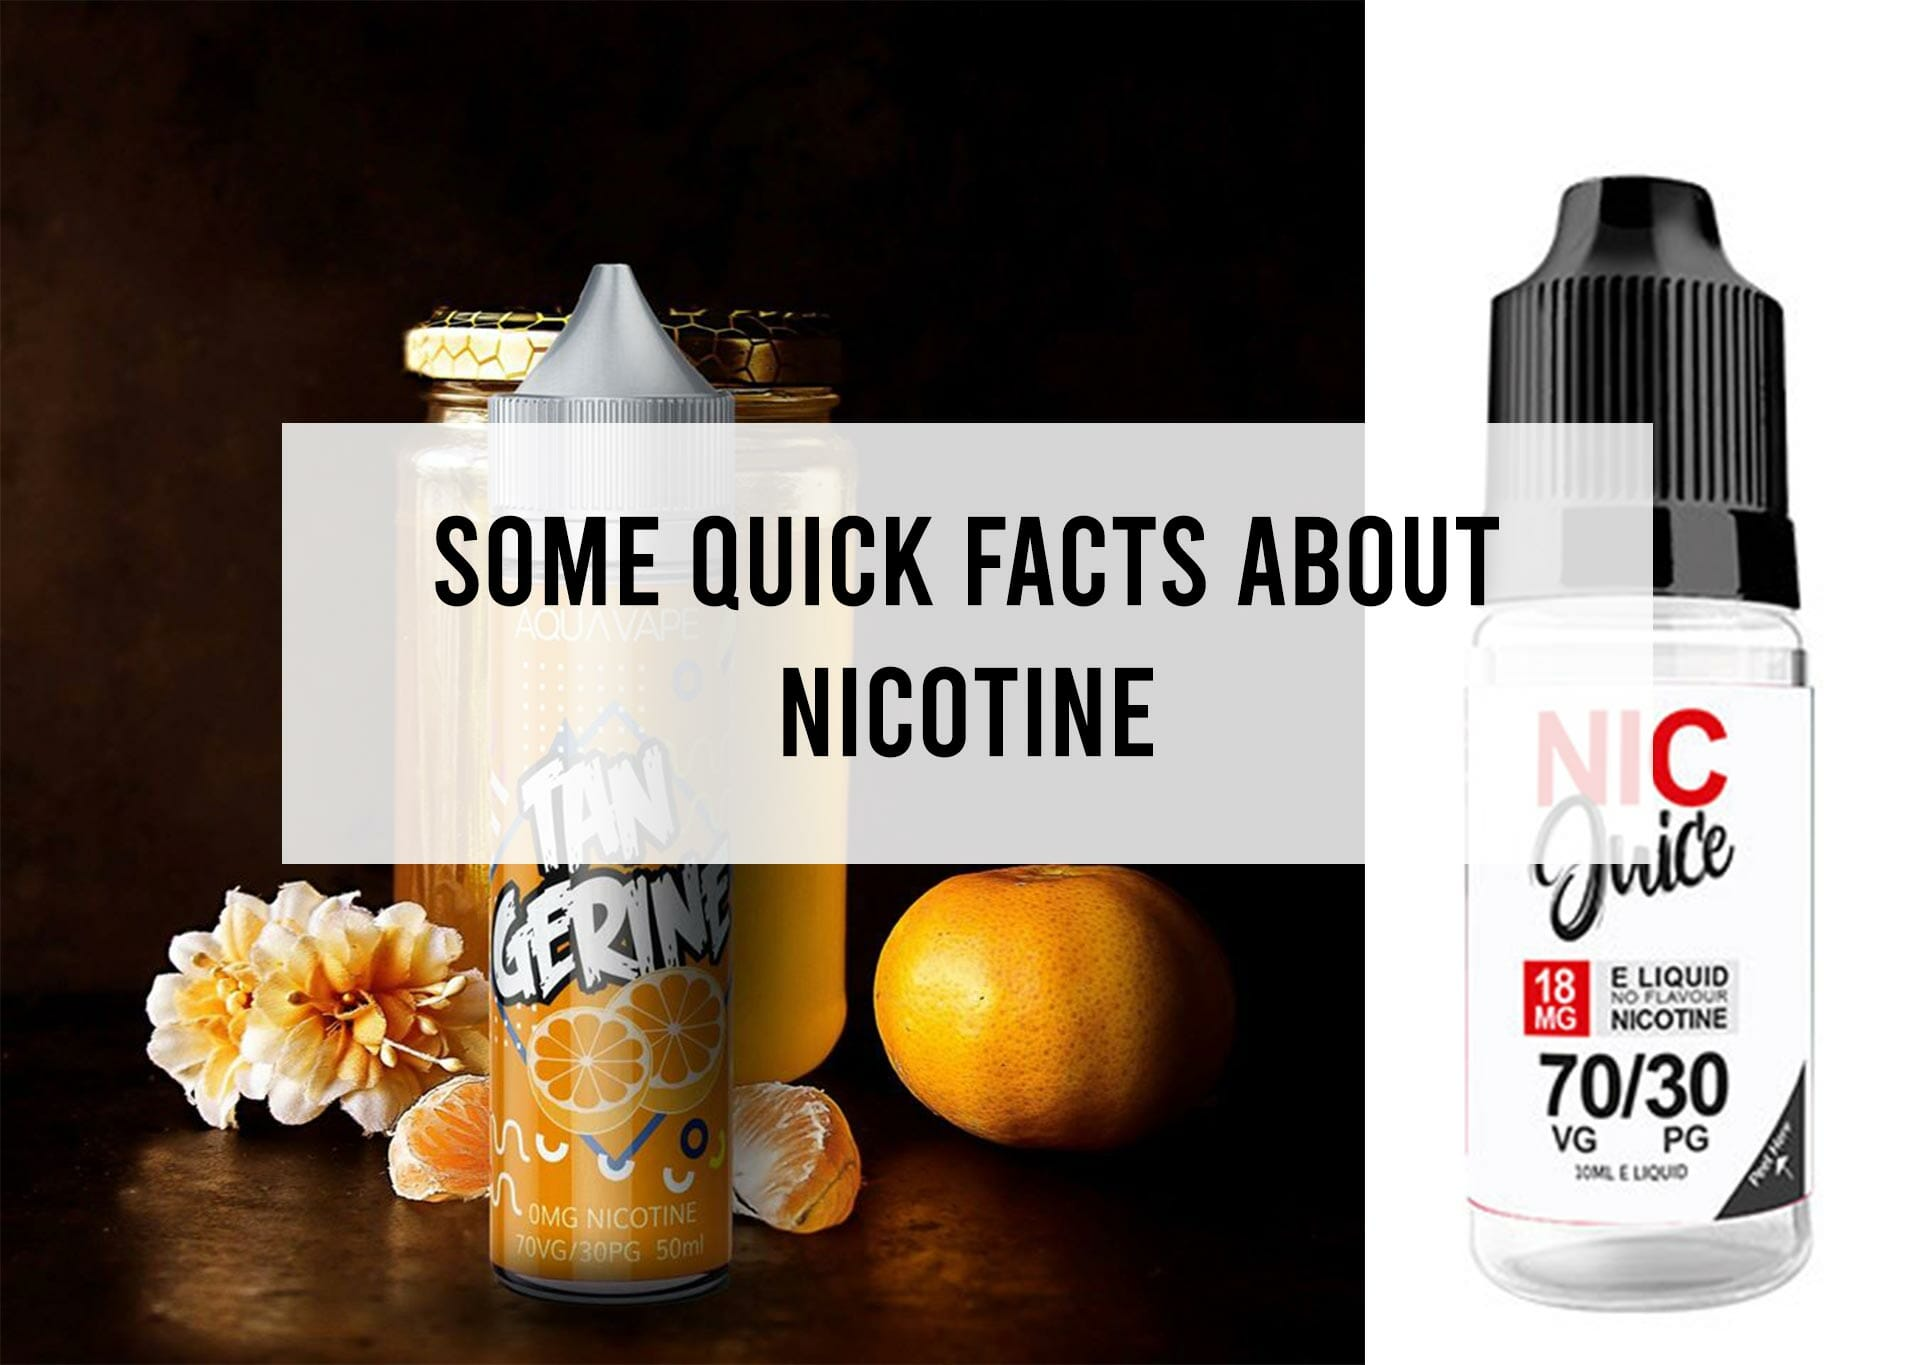 Some-Quick-Facts-about-Nicotine